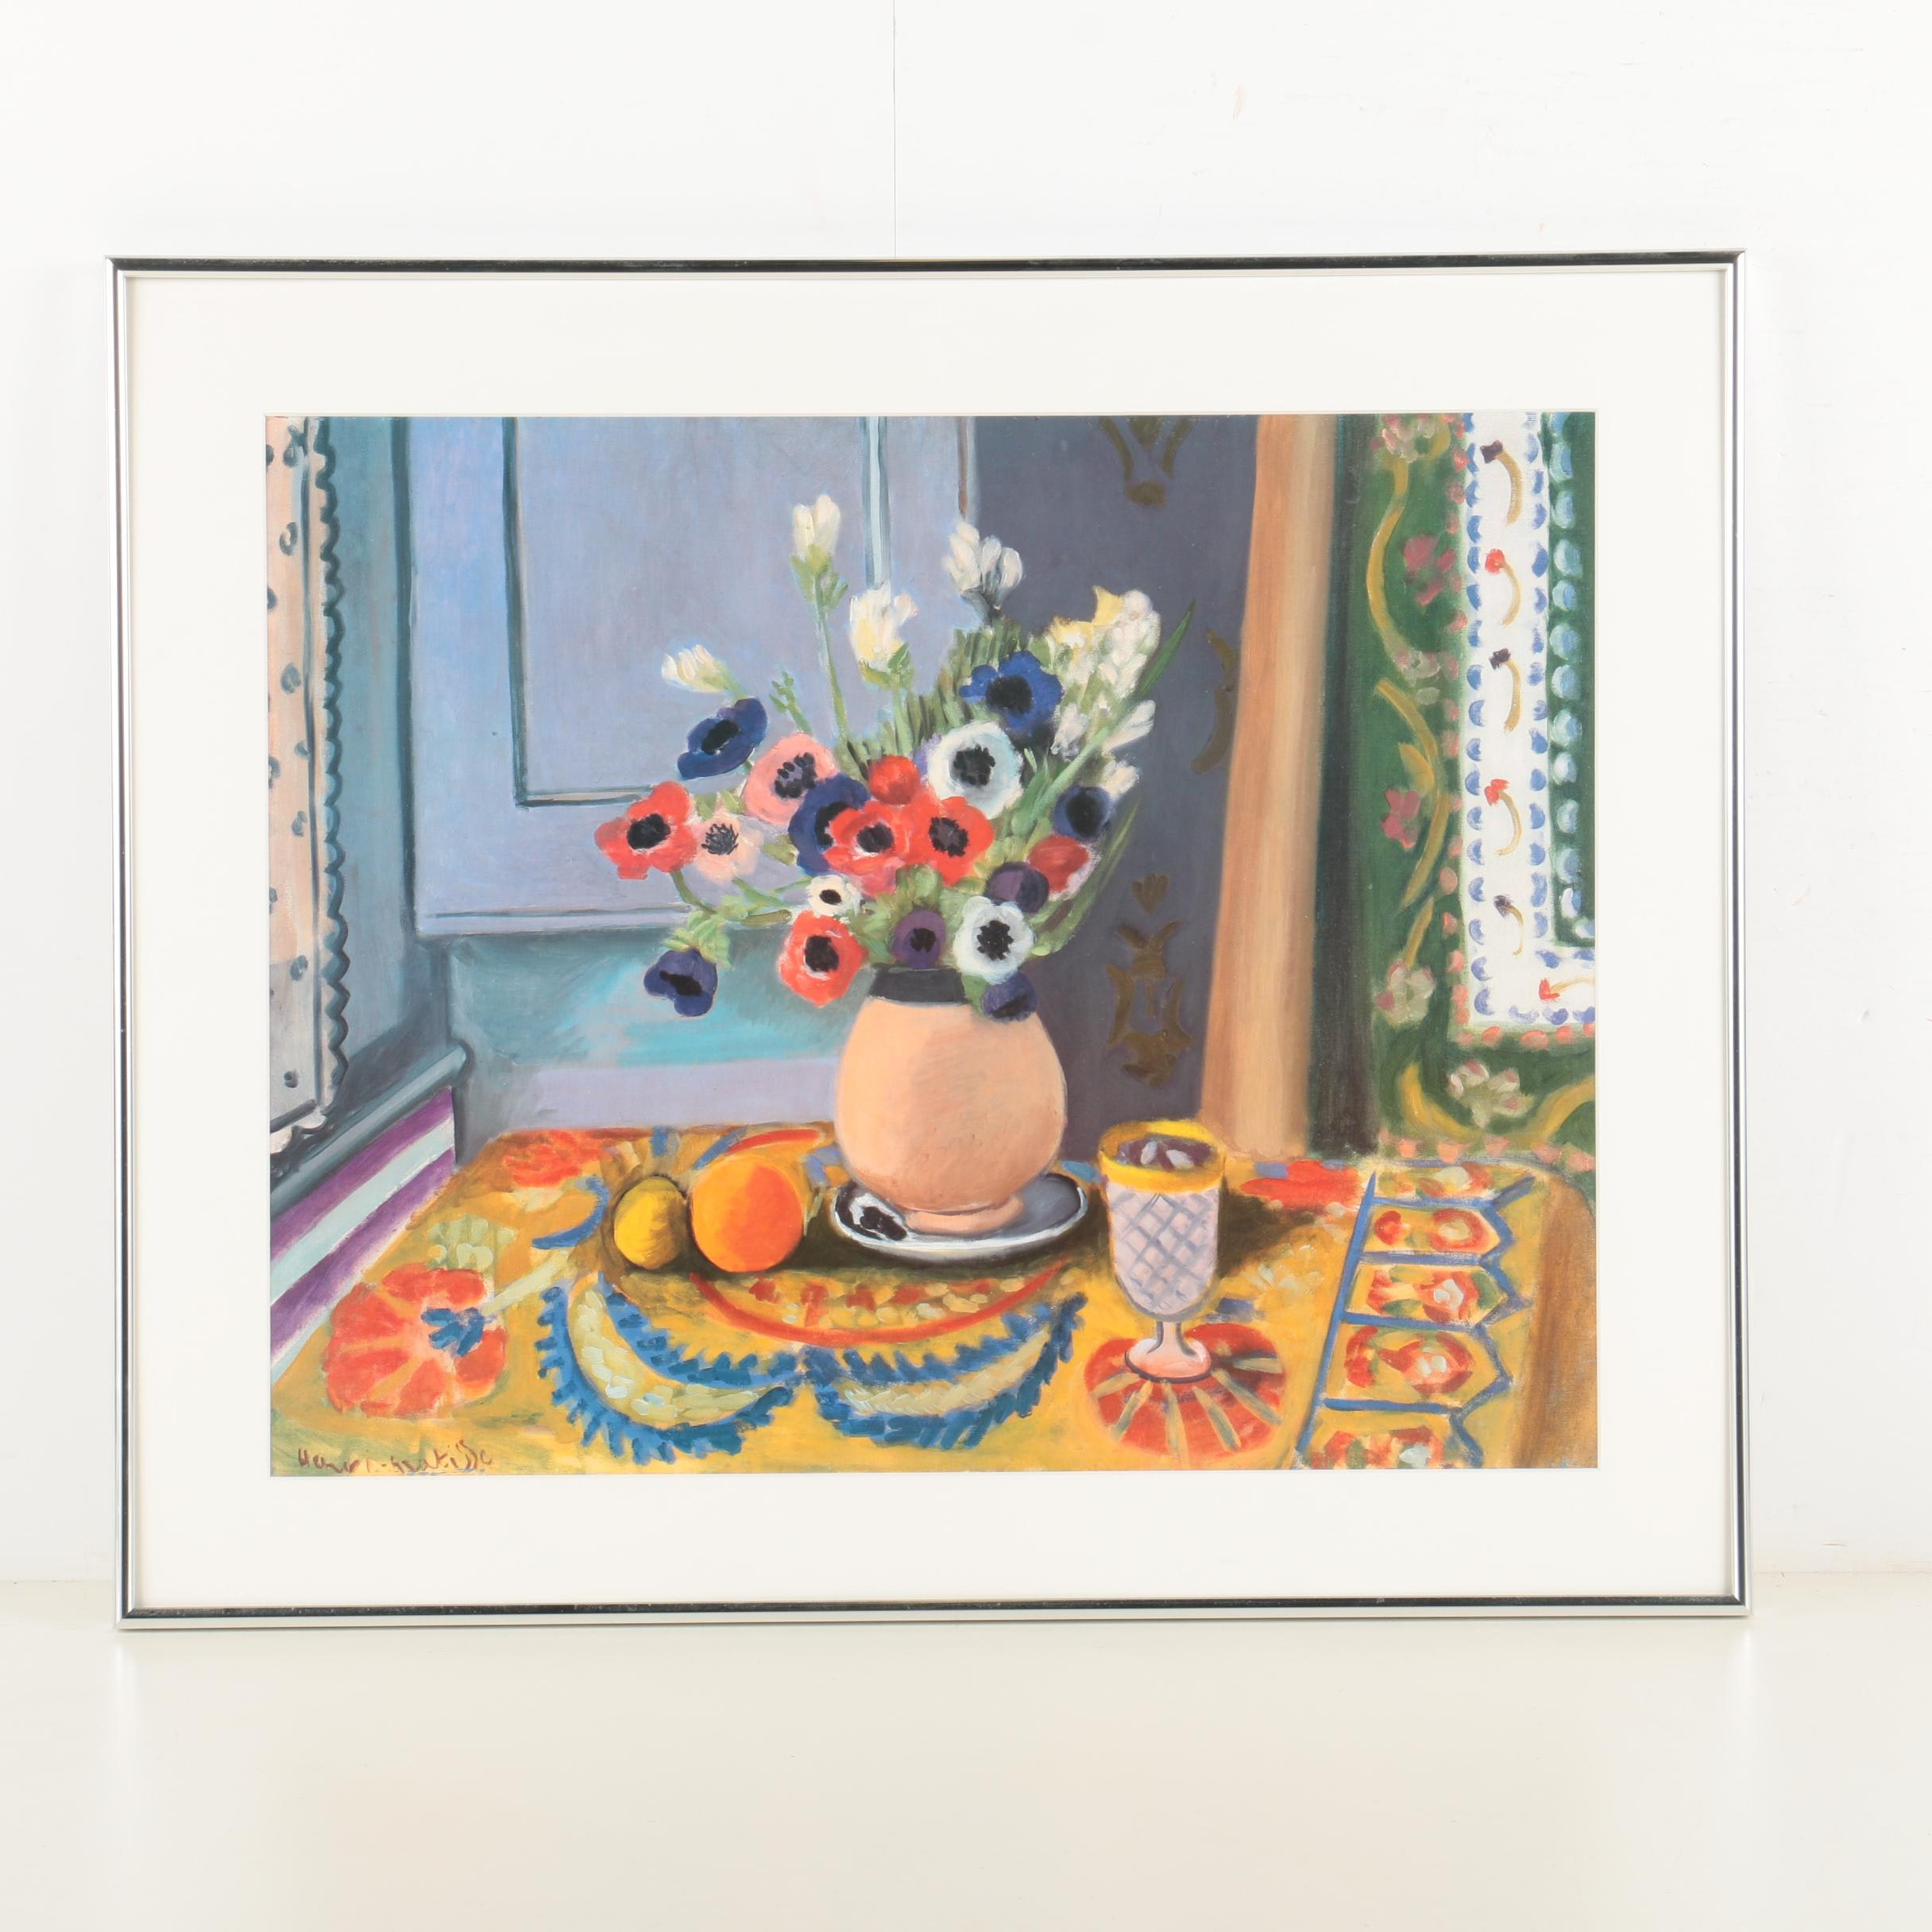 """Offset Lithograph After Henri Matisse's """"Anemones in an Earthenware Vase"""""""